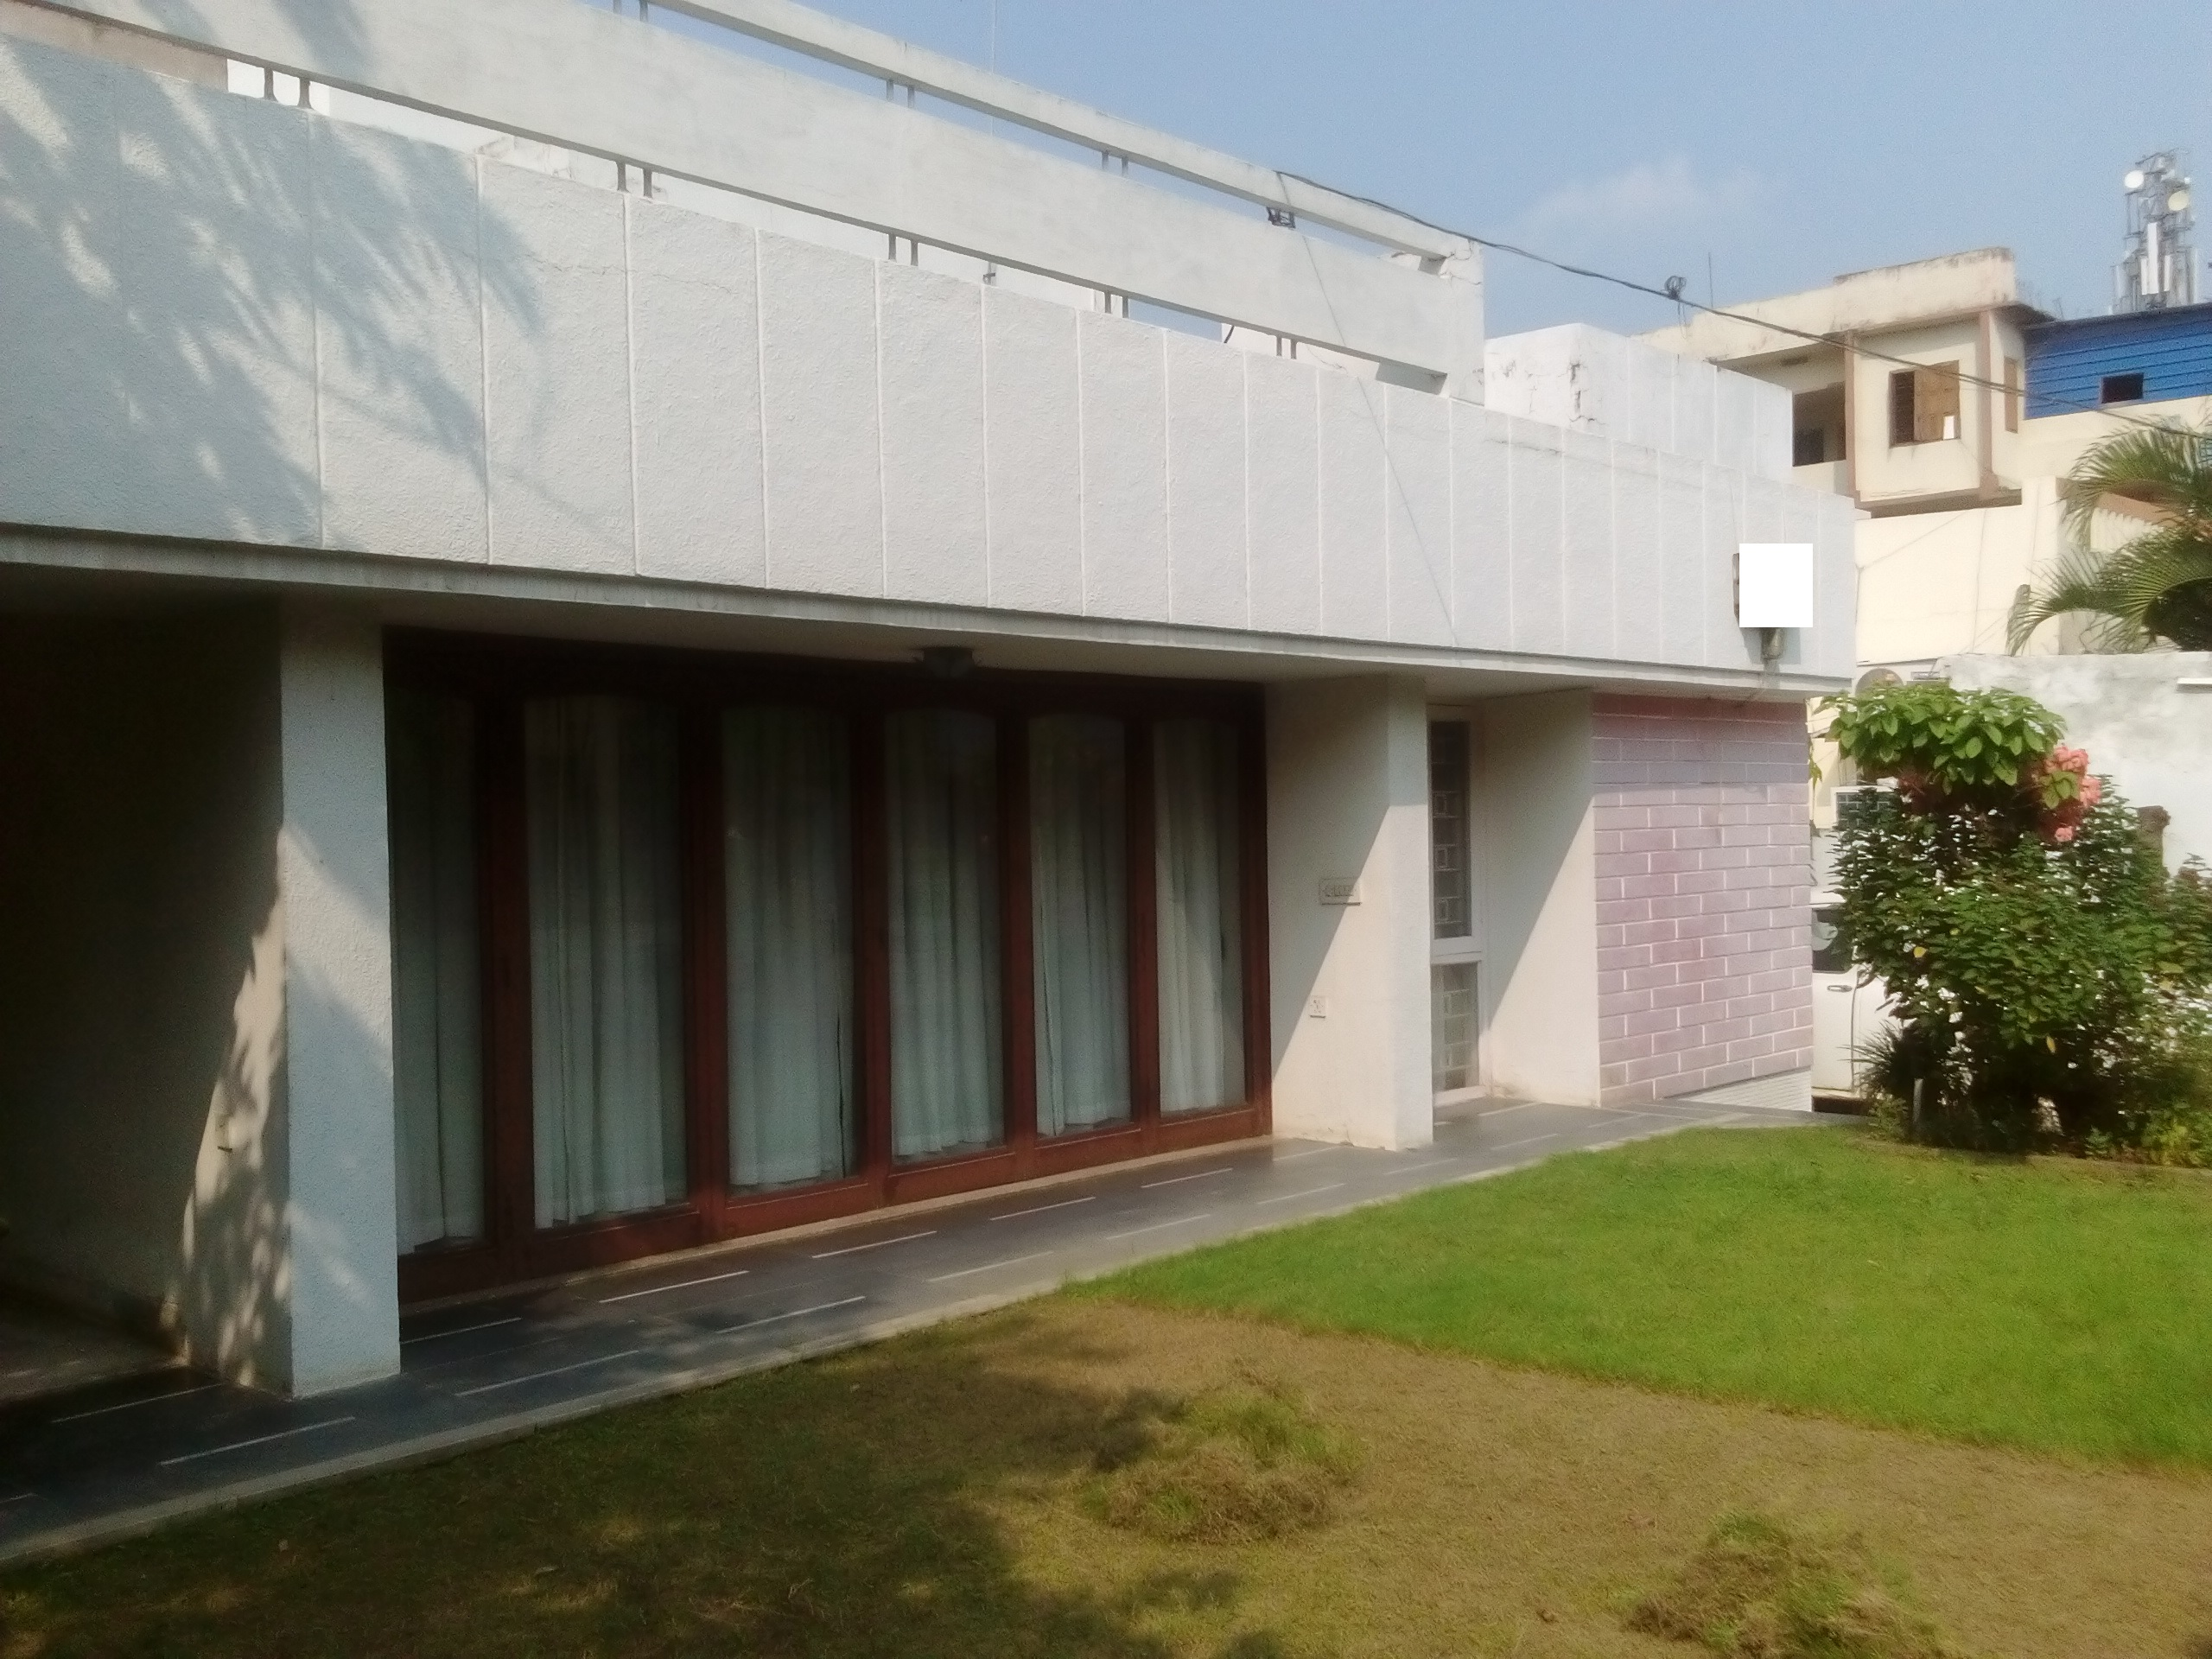 Bungalow in S K Puri Patna